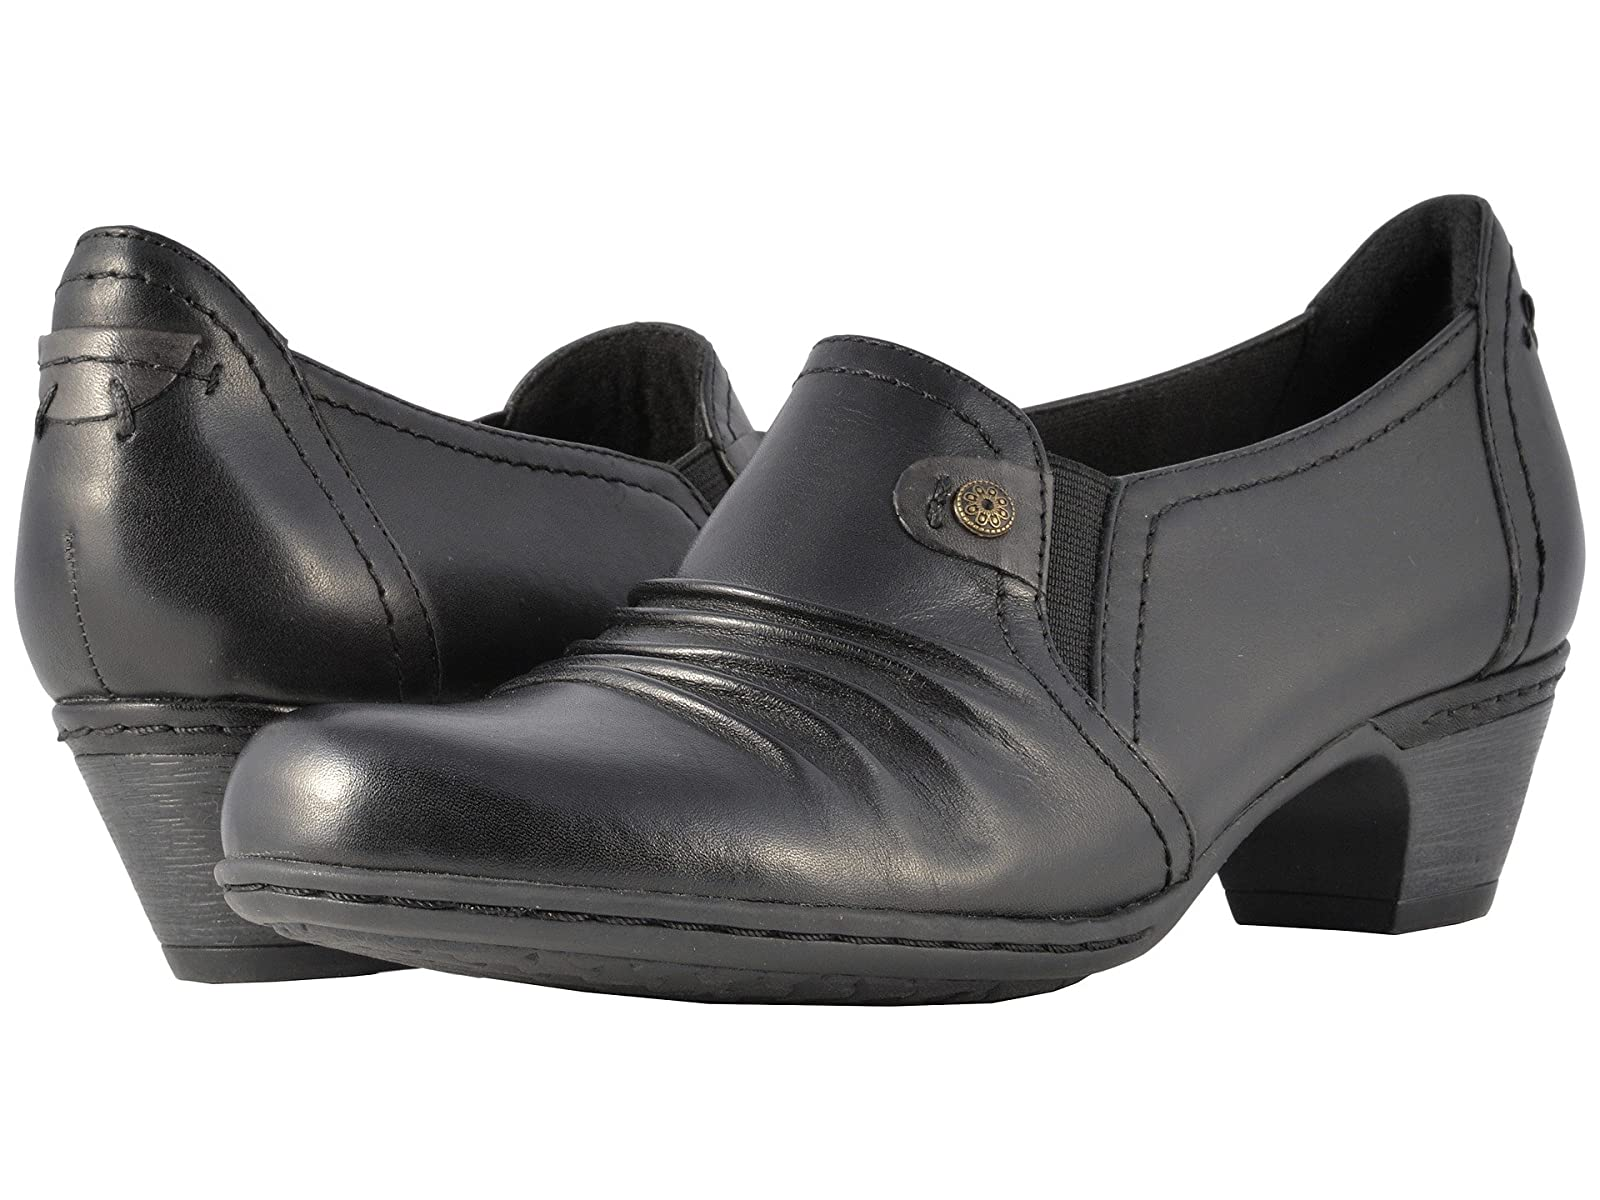 Rockport Cobb Hill Collection Cobb Hill AdeleAtmospheric grades have affordable shoes